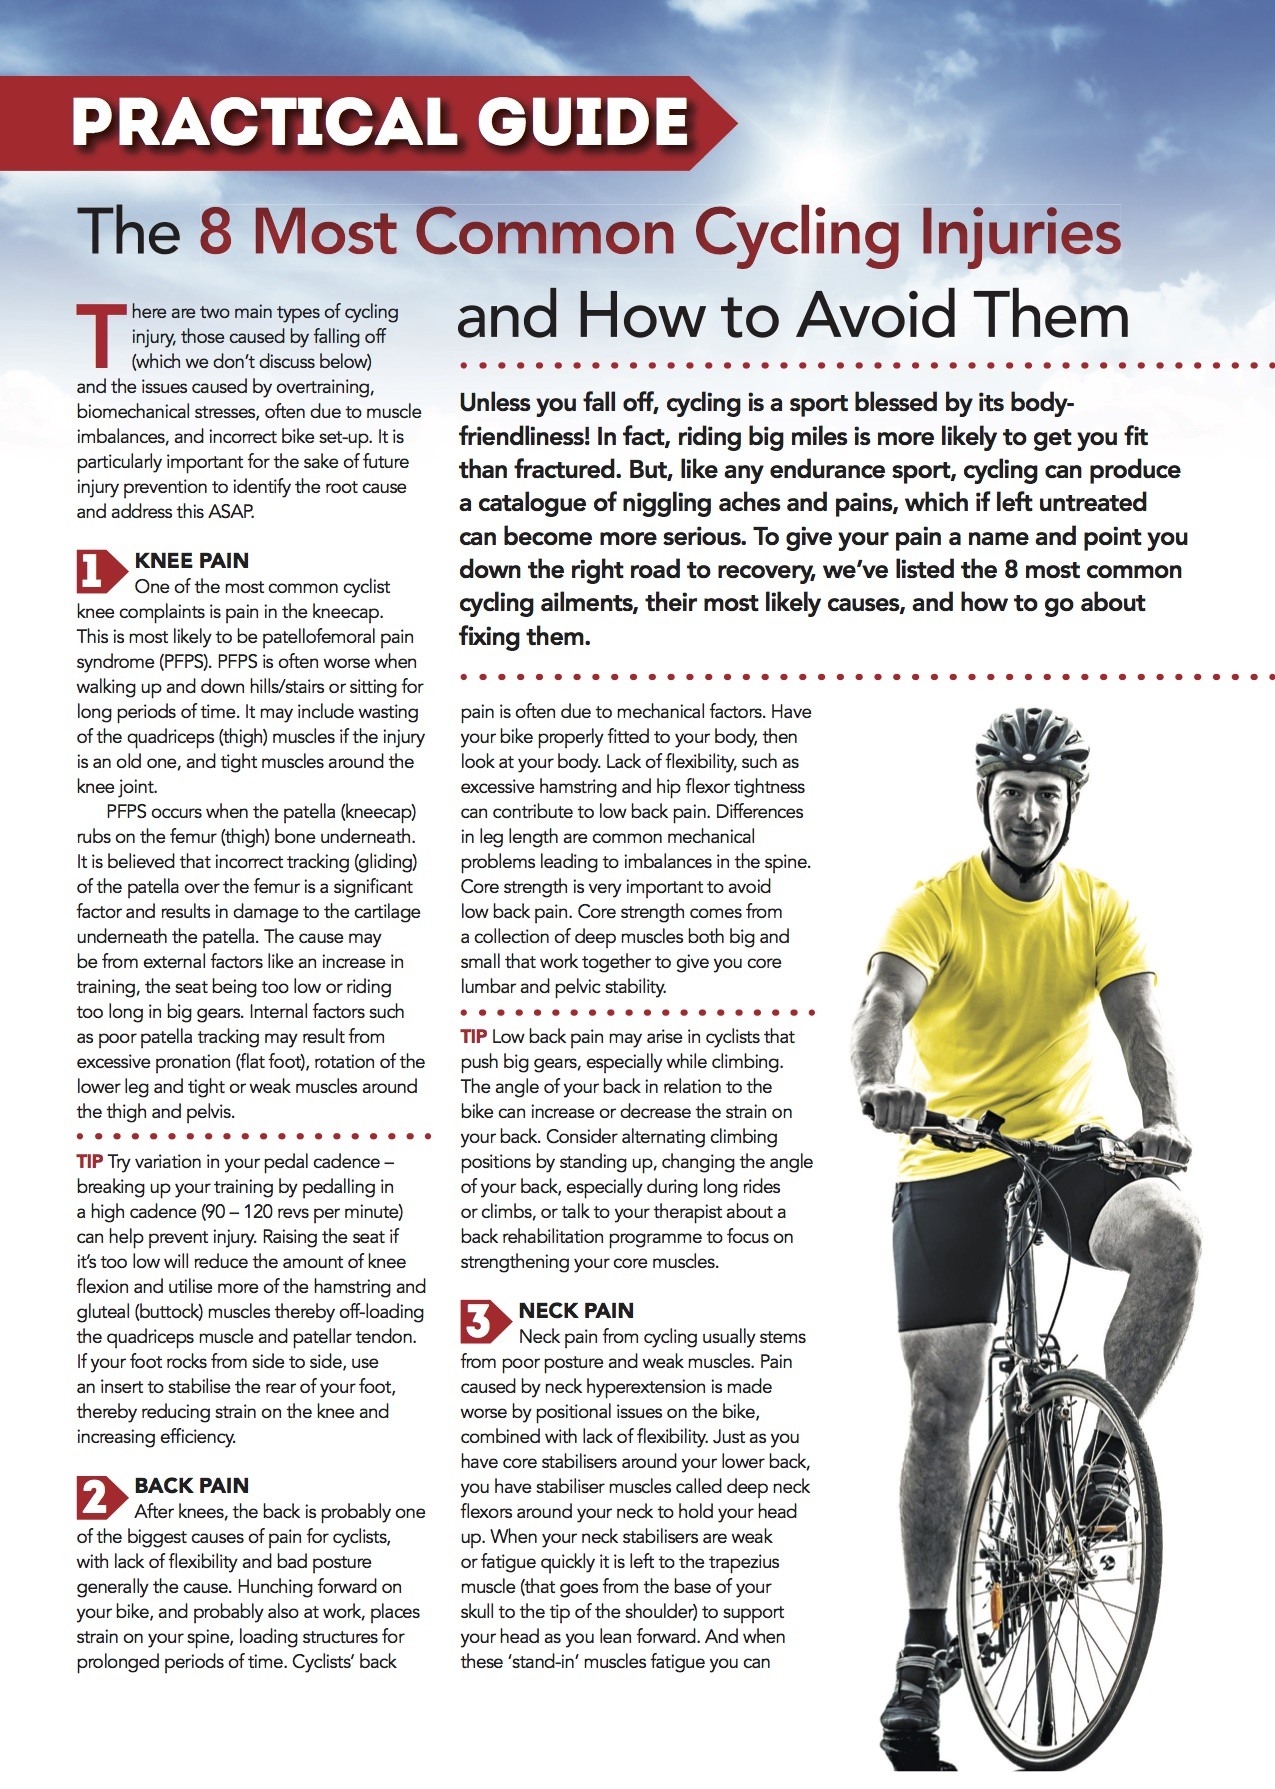 Practical Guide to Cycling Injuries_Guide_Page_1.jpg